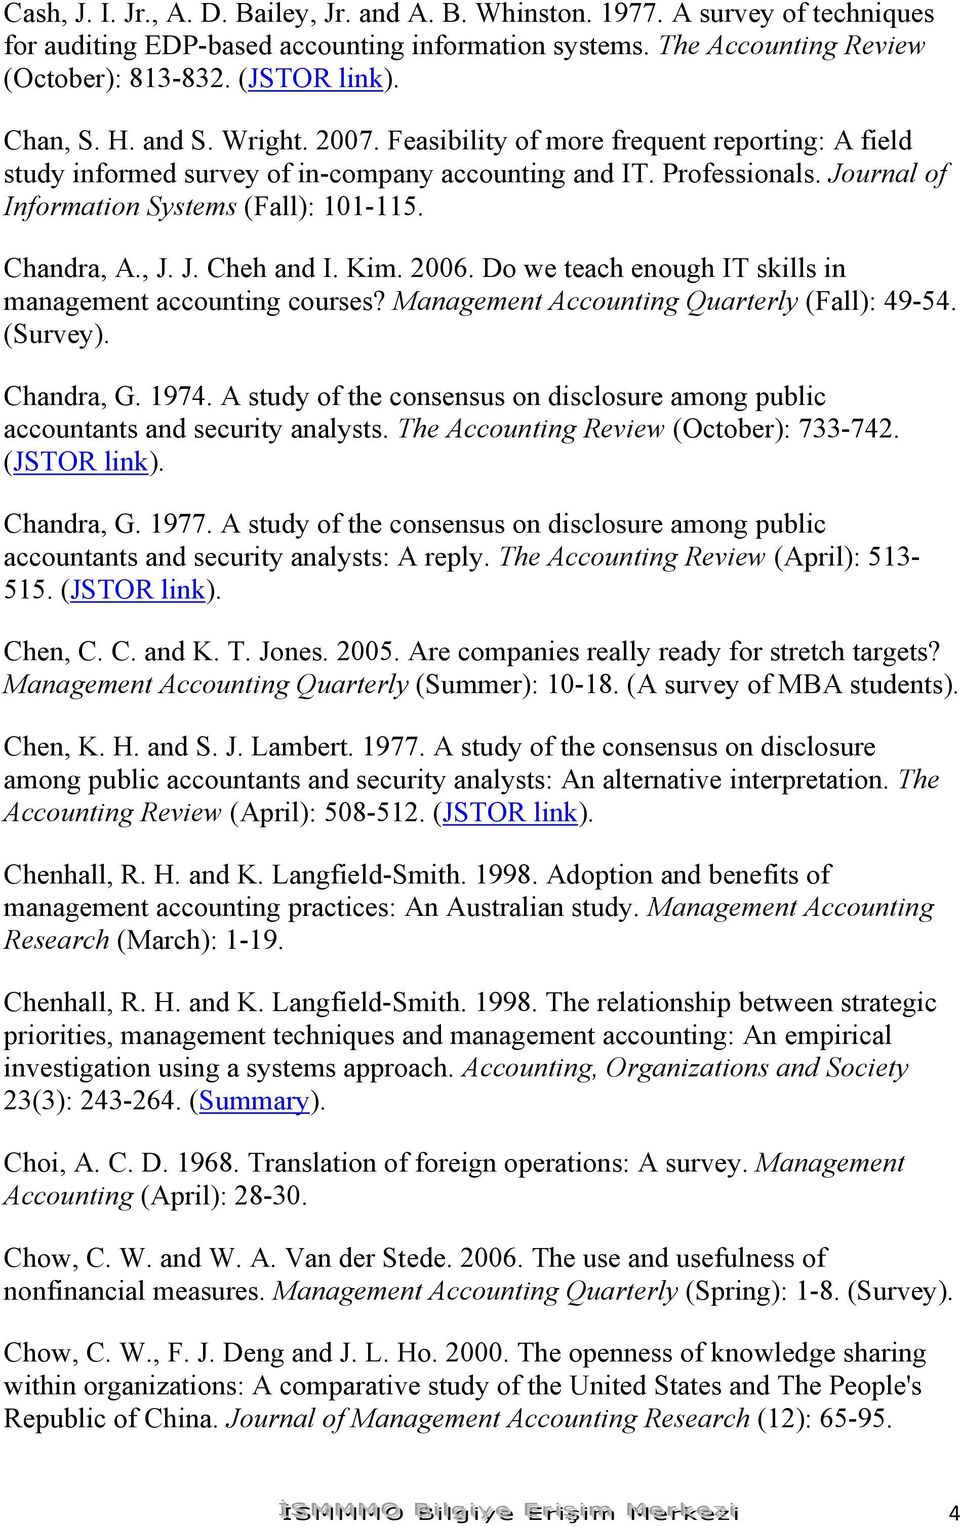 Chandra, A., J. J. Cheh and I. Kim. 2006. Do we teach enough IT skills in management accounting courses? Management Accounting Quarterly (Fall): 49-54. (Survey). Chandra, G. 1974.